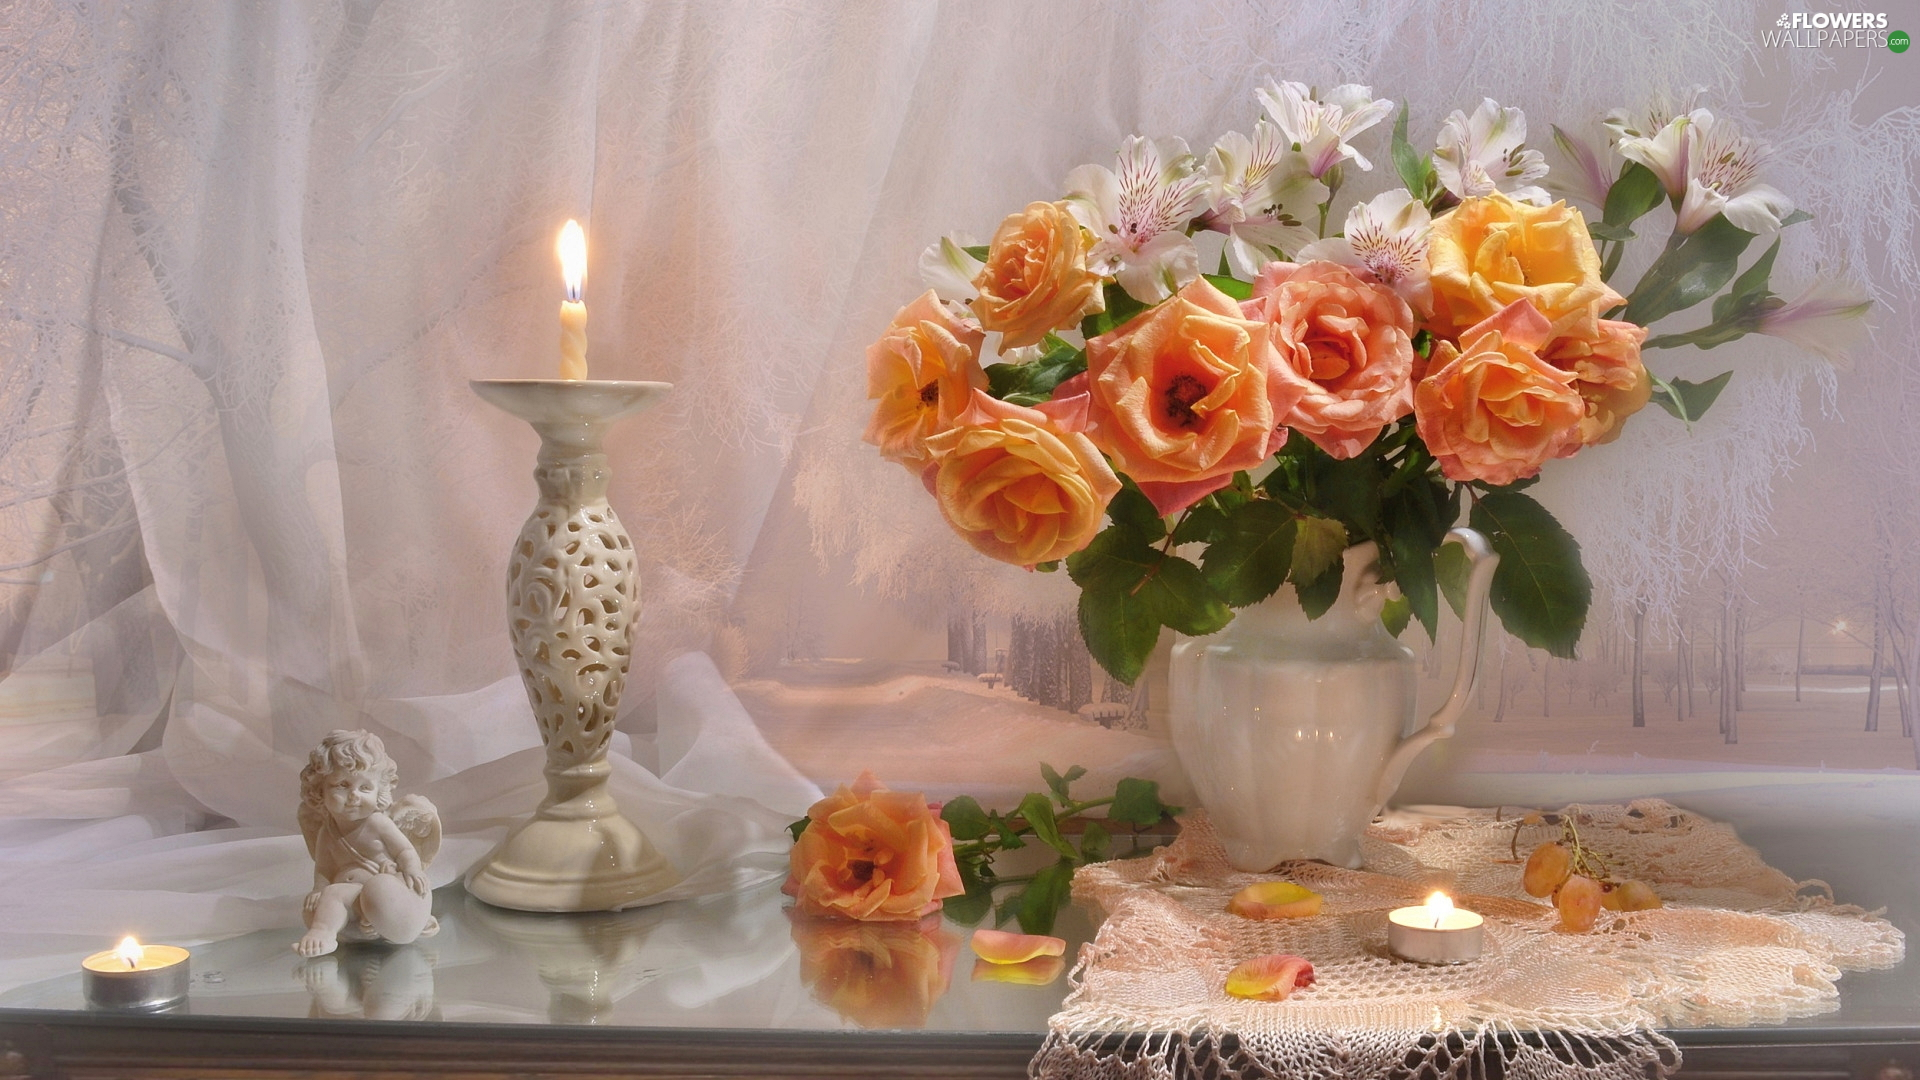 Flowers, composition, roses, Alstroemeria, angel, Table, candle, figure, Vase